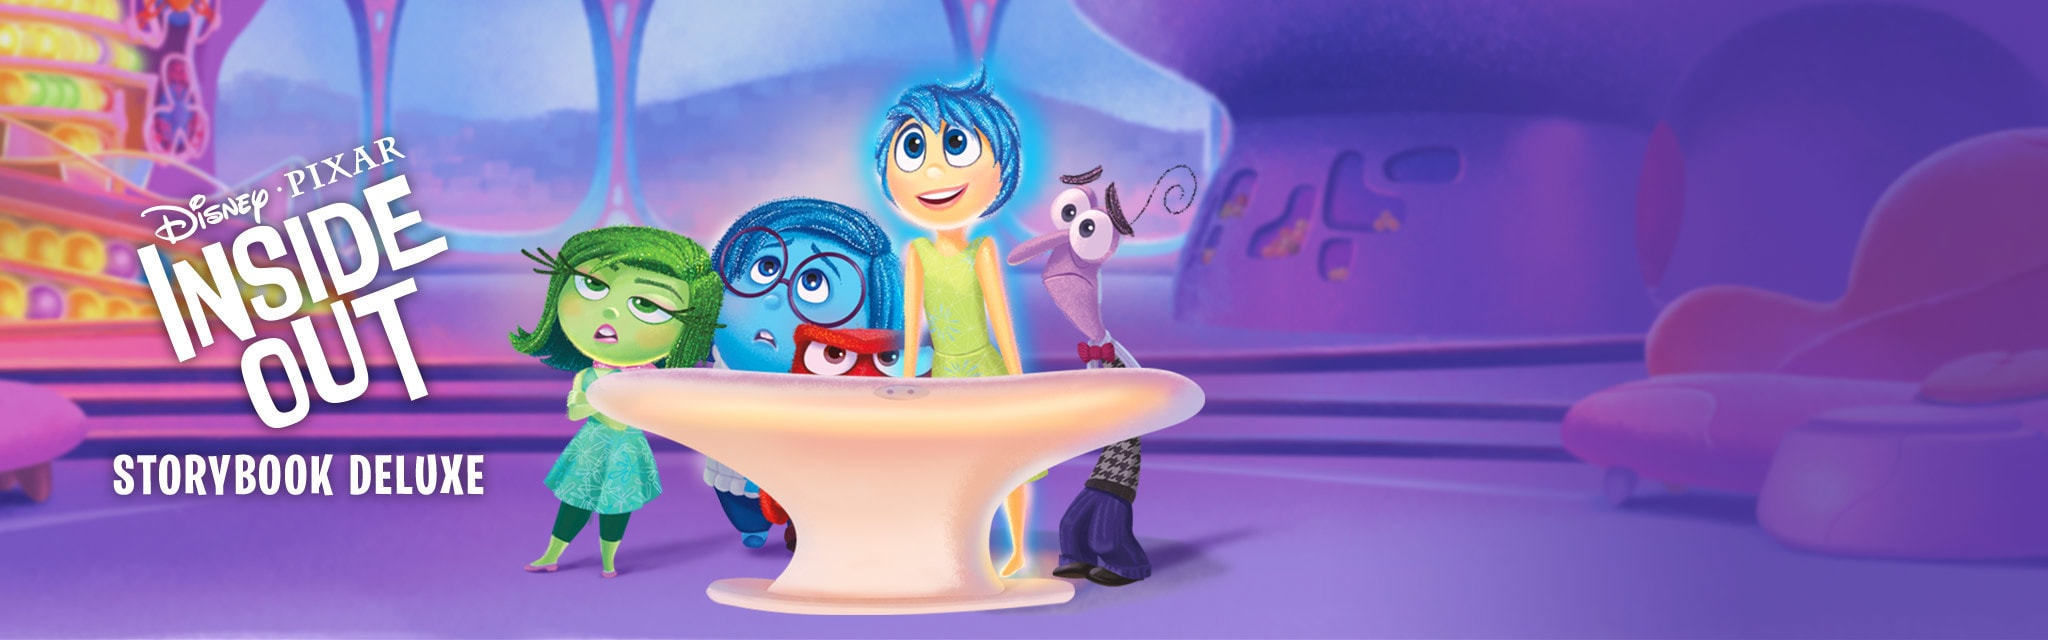 Inside Out: Storybook Deluxe App - Portal Hero - TH